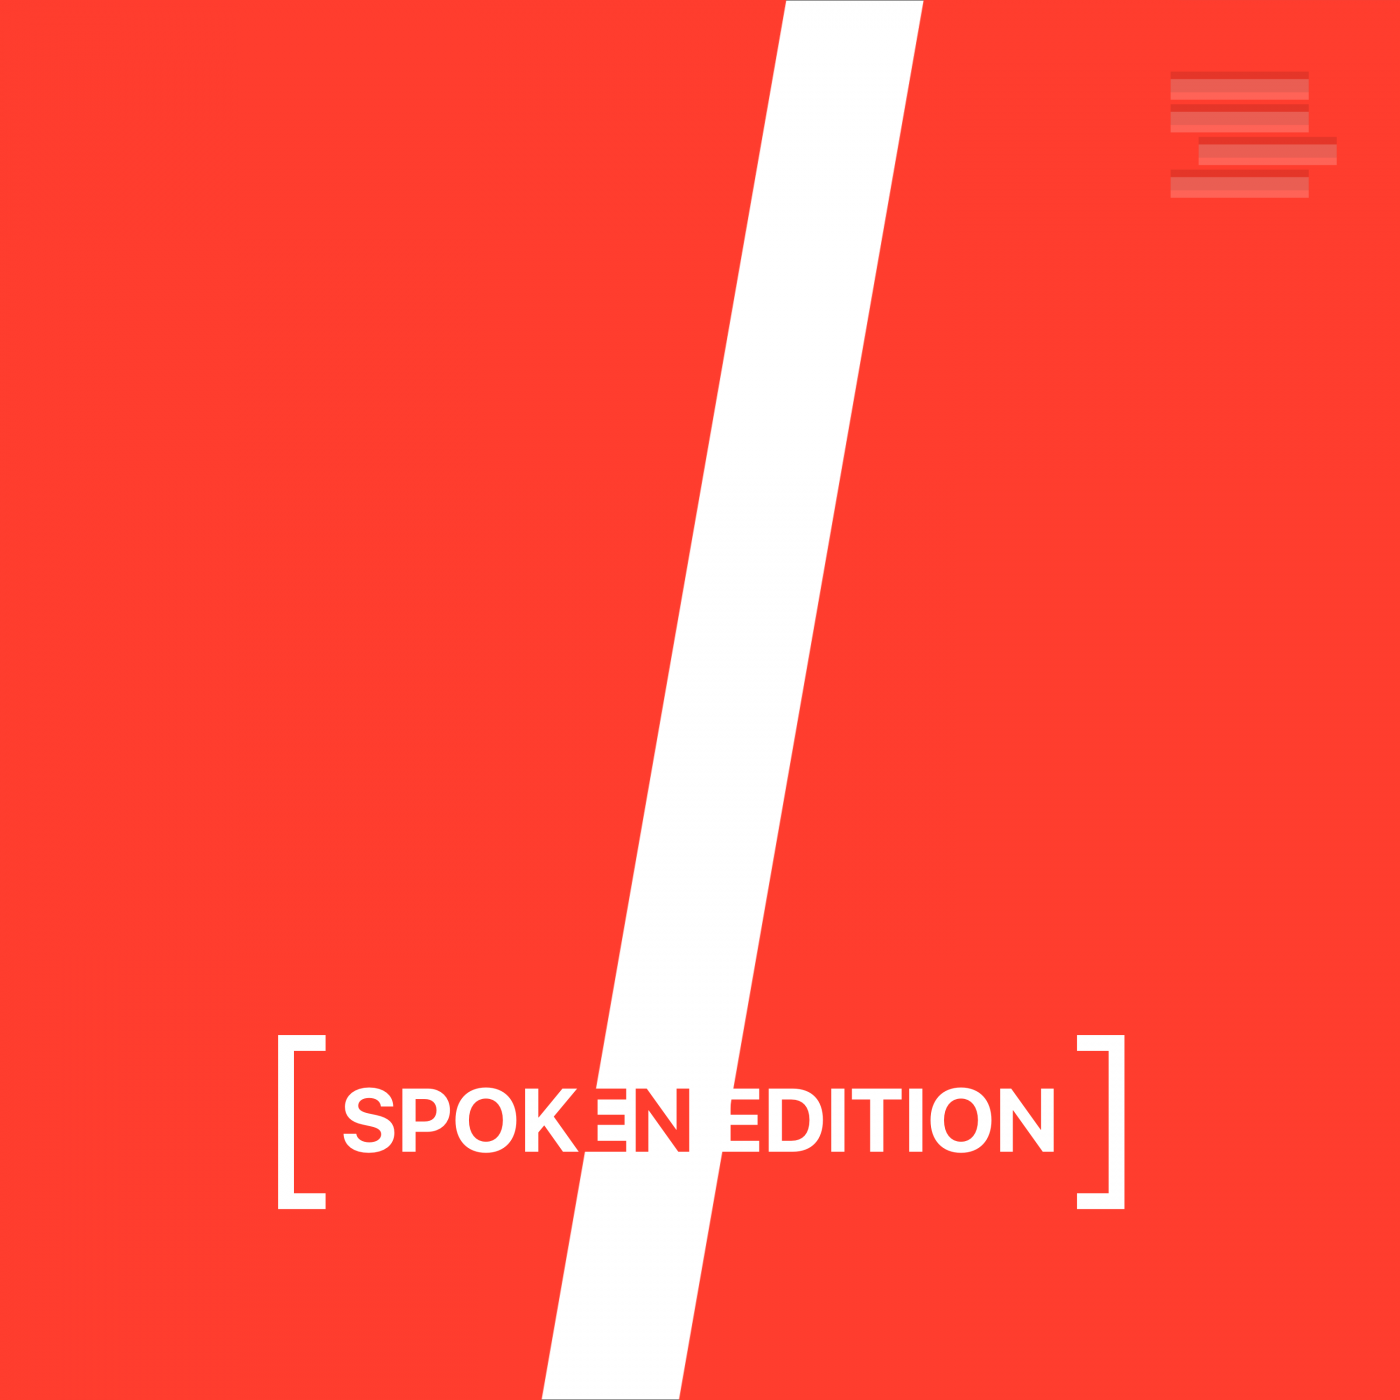 HuffPost Entertainment – Spoken Edition